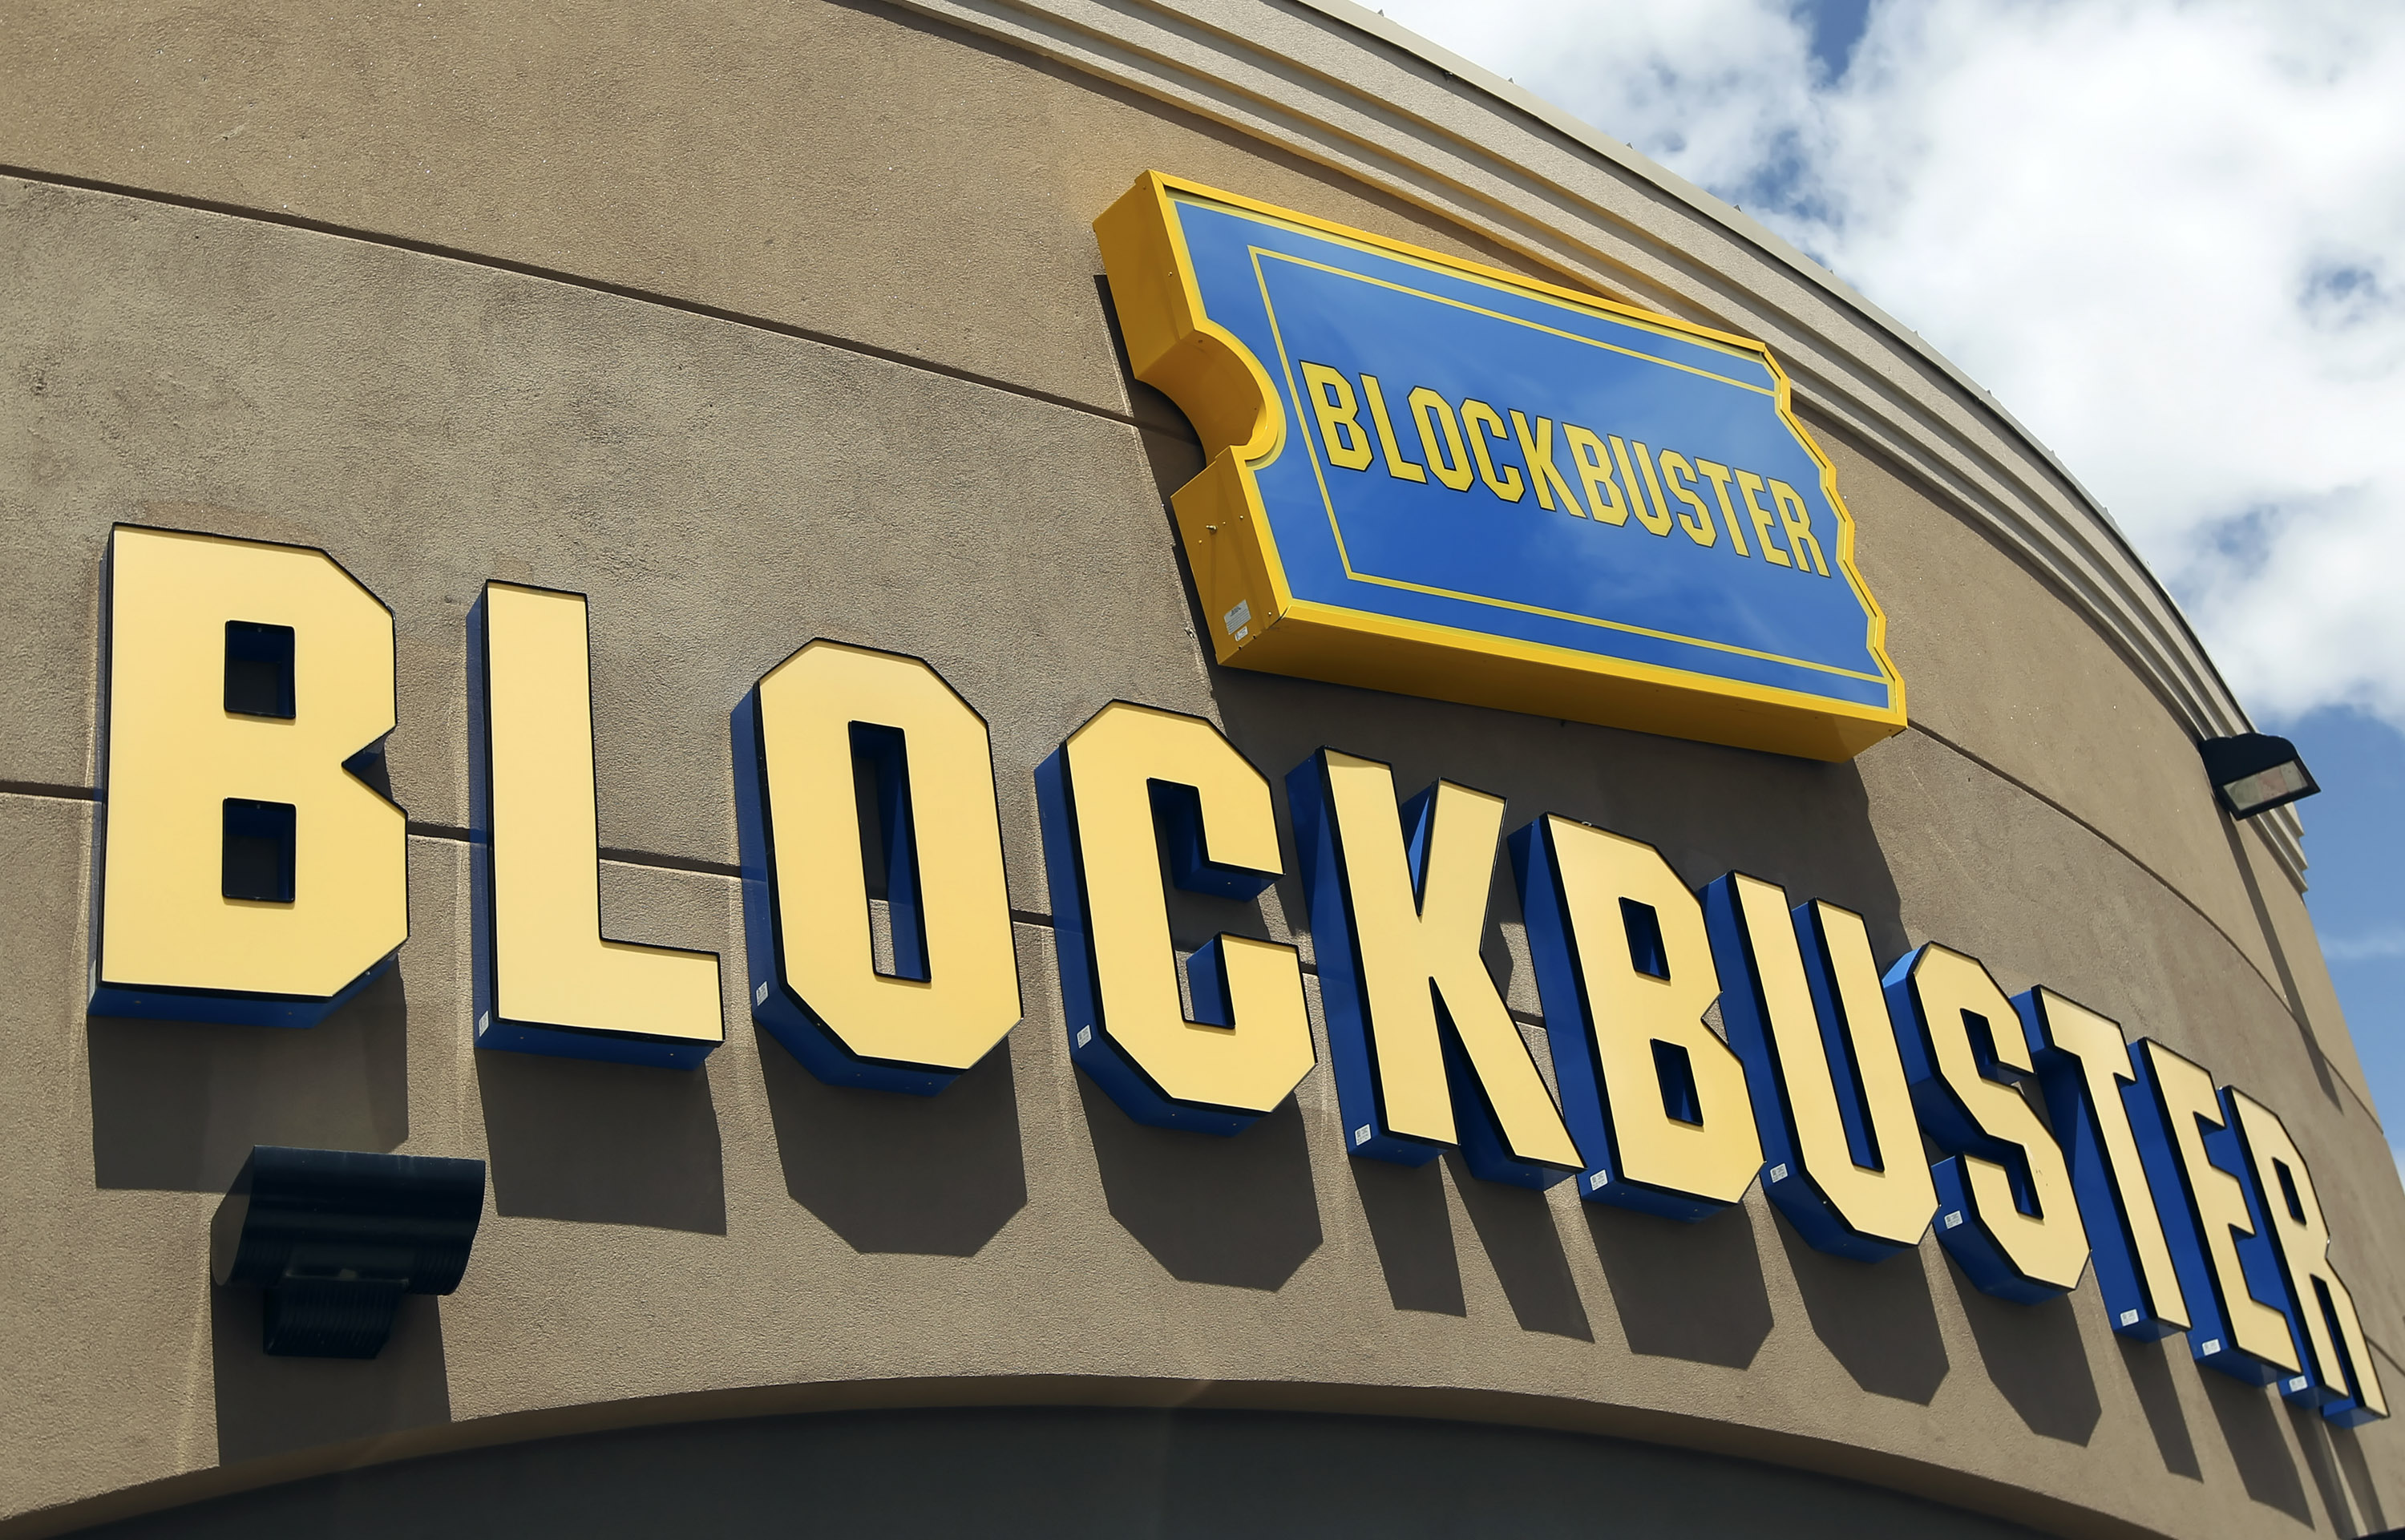 Signage hangs outside a Blockbuster store in Salt Lake City, Utah, U.S., on Wednesday, May 12, 2010.